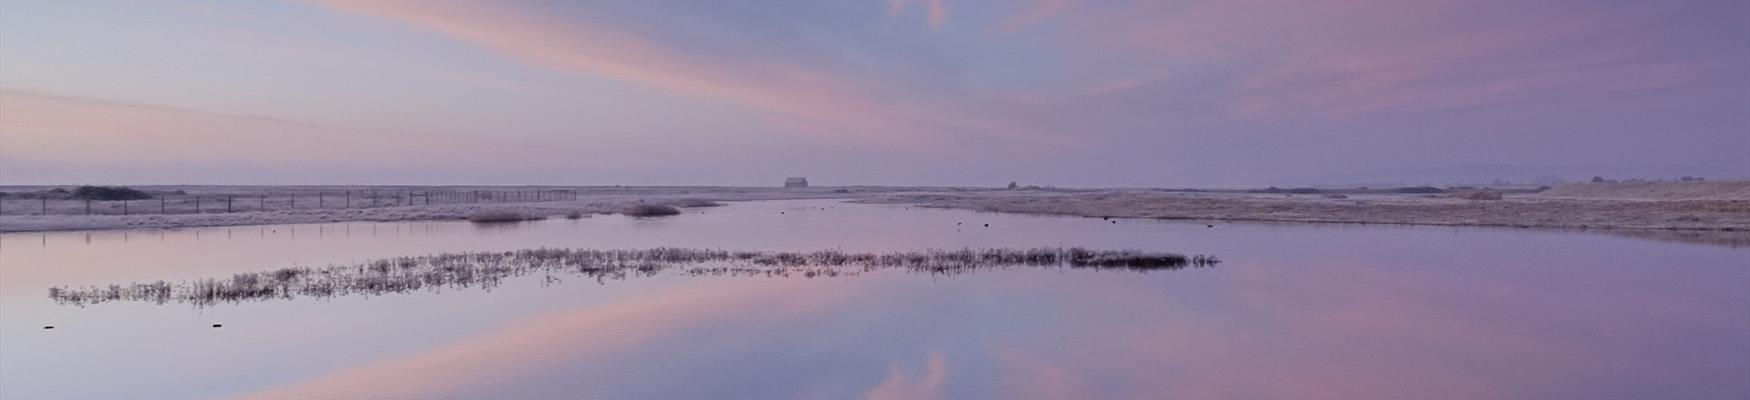 Winter sunrise at Rye Harbour Nature Reserve, East Sussex